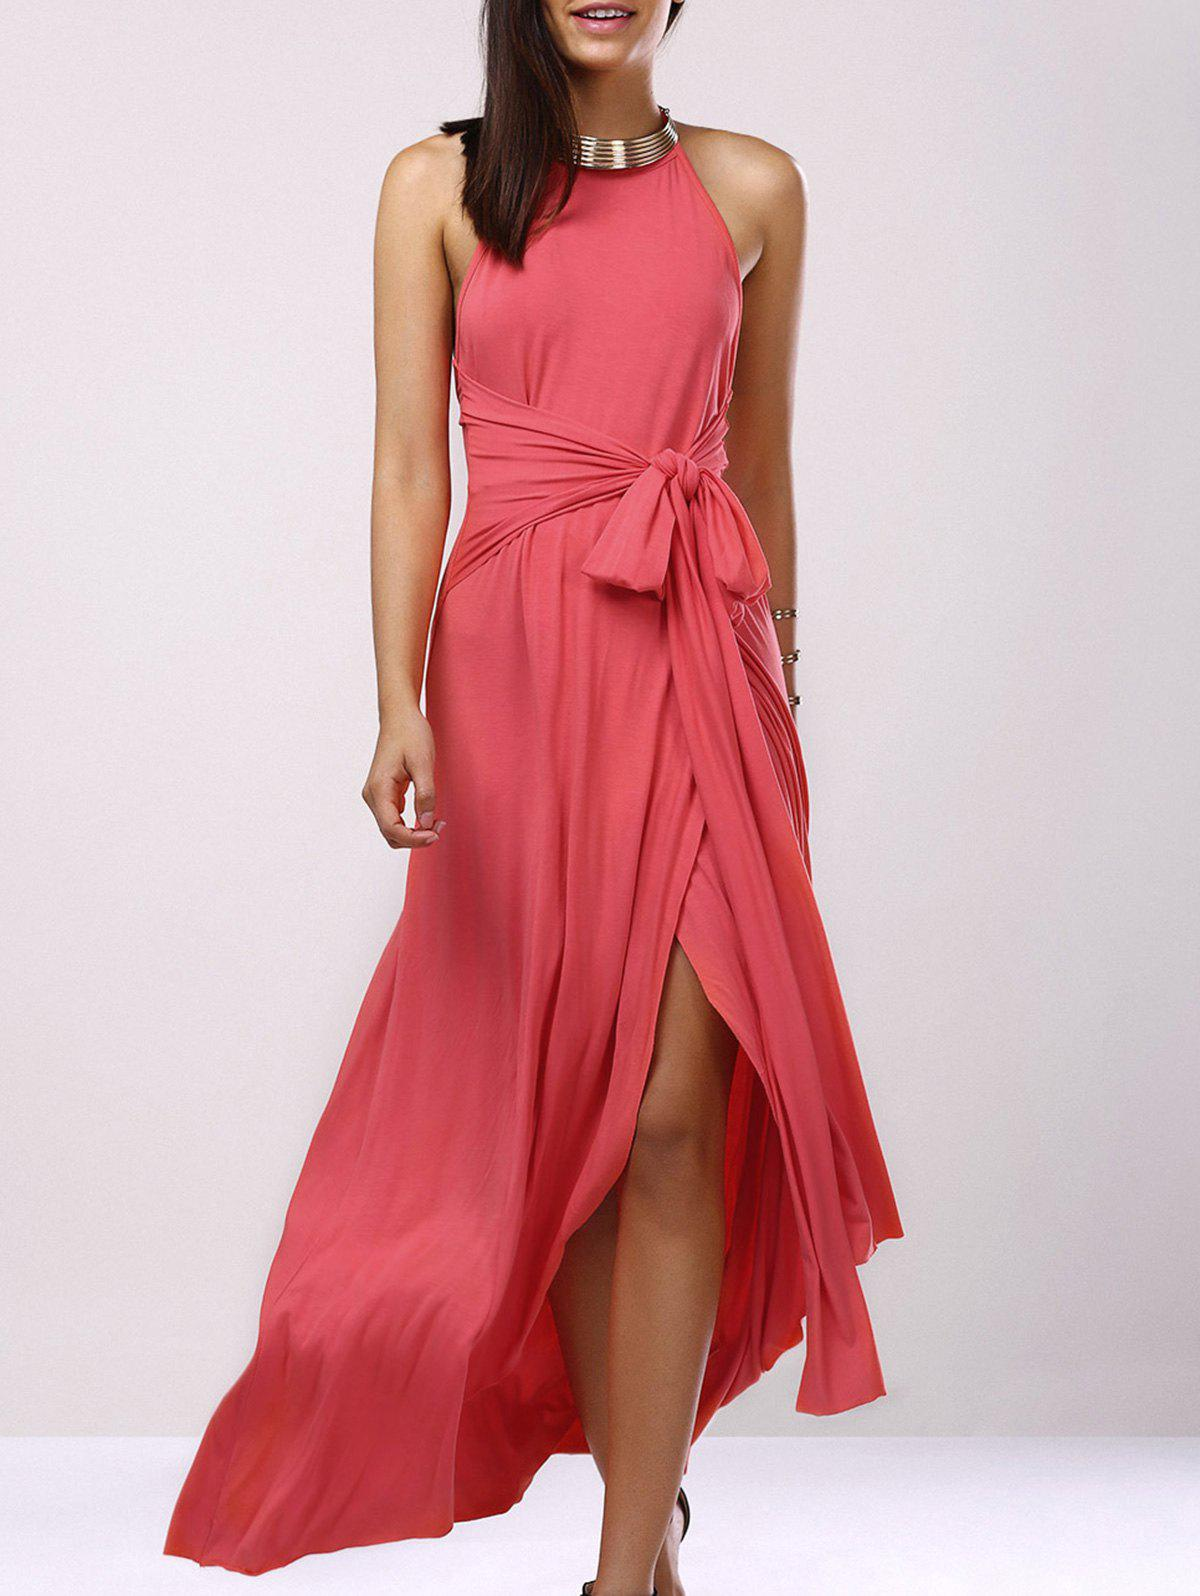 Fashionable Women's Hatler Sleeveless Backless Solid Color Maxi Dress - LIGHT PINK XL